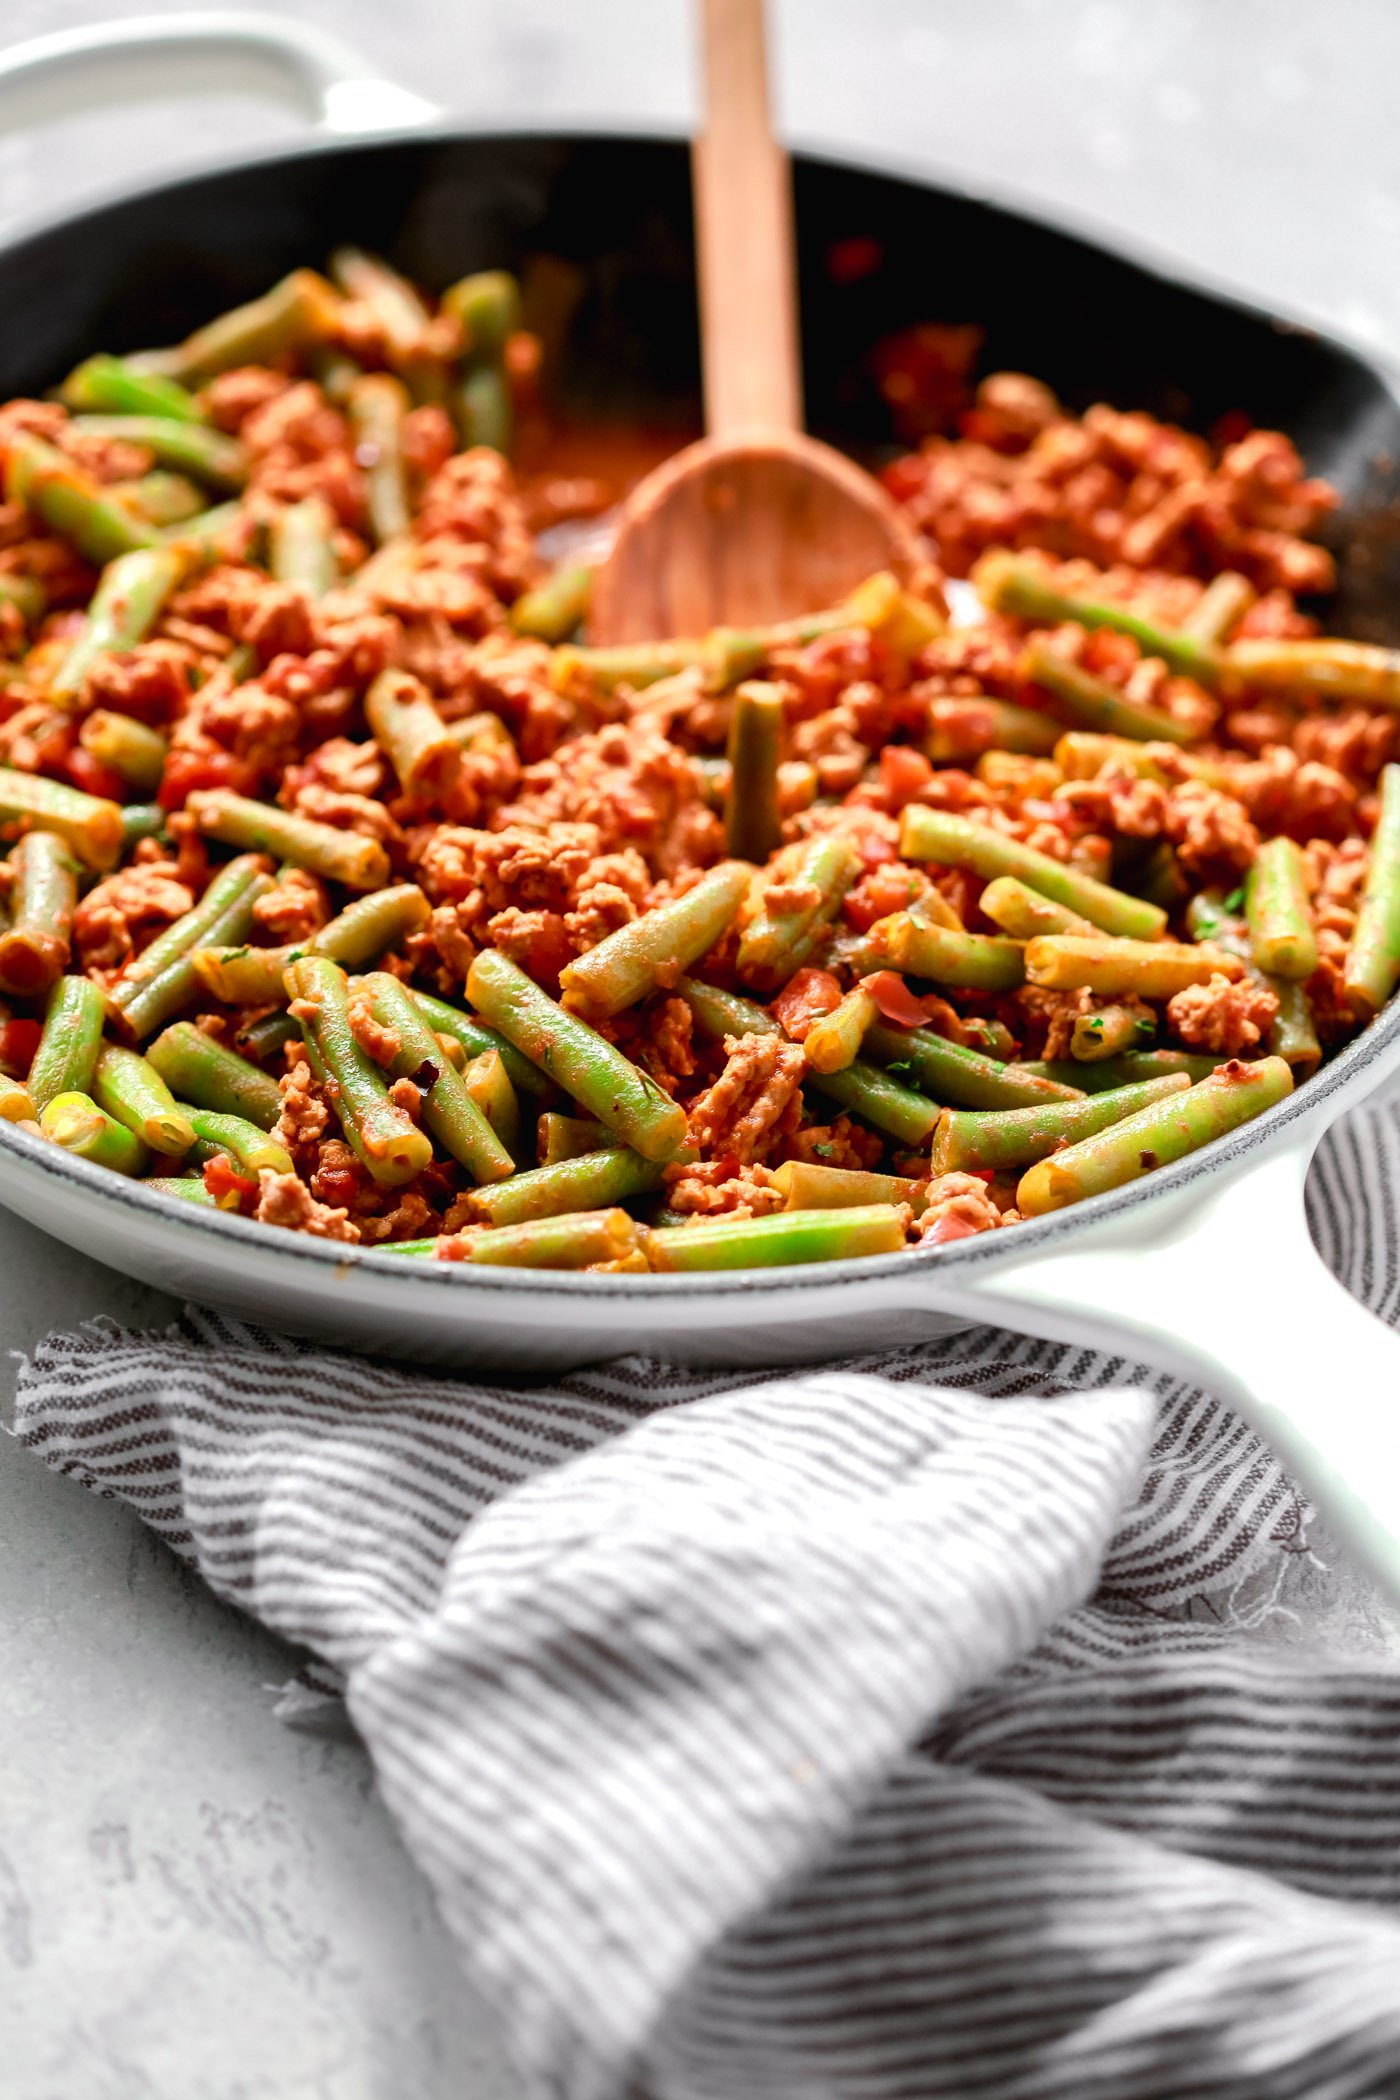 Healthy Ground Turkey Recipes | Ground Turkey Skillet with Green Beans